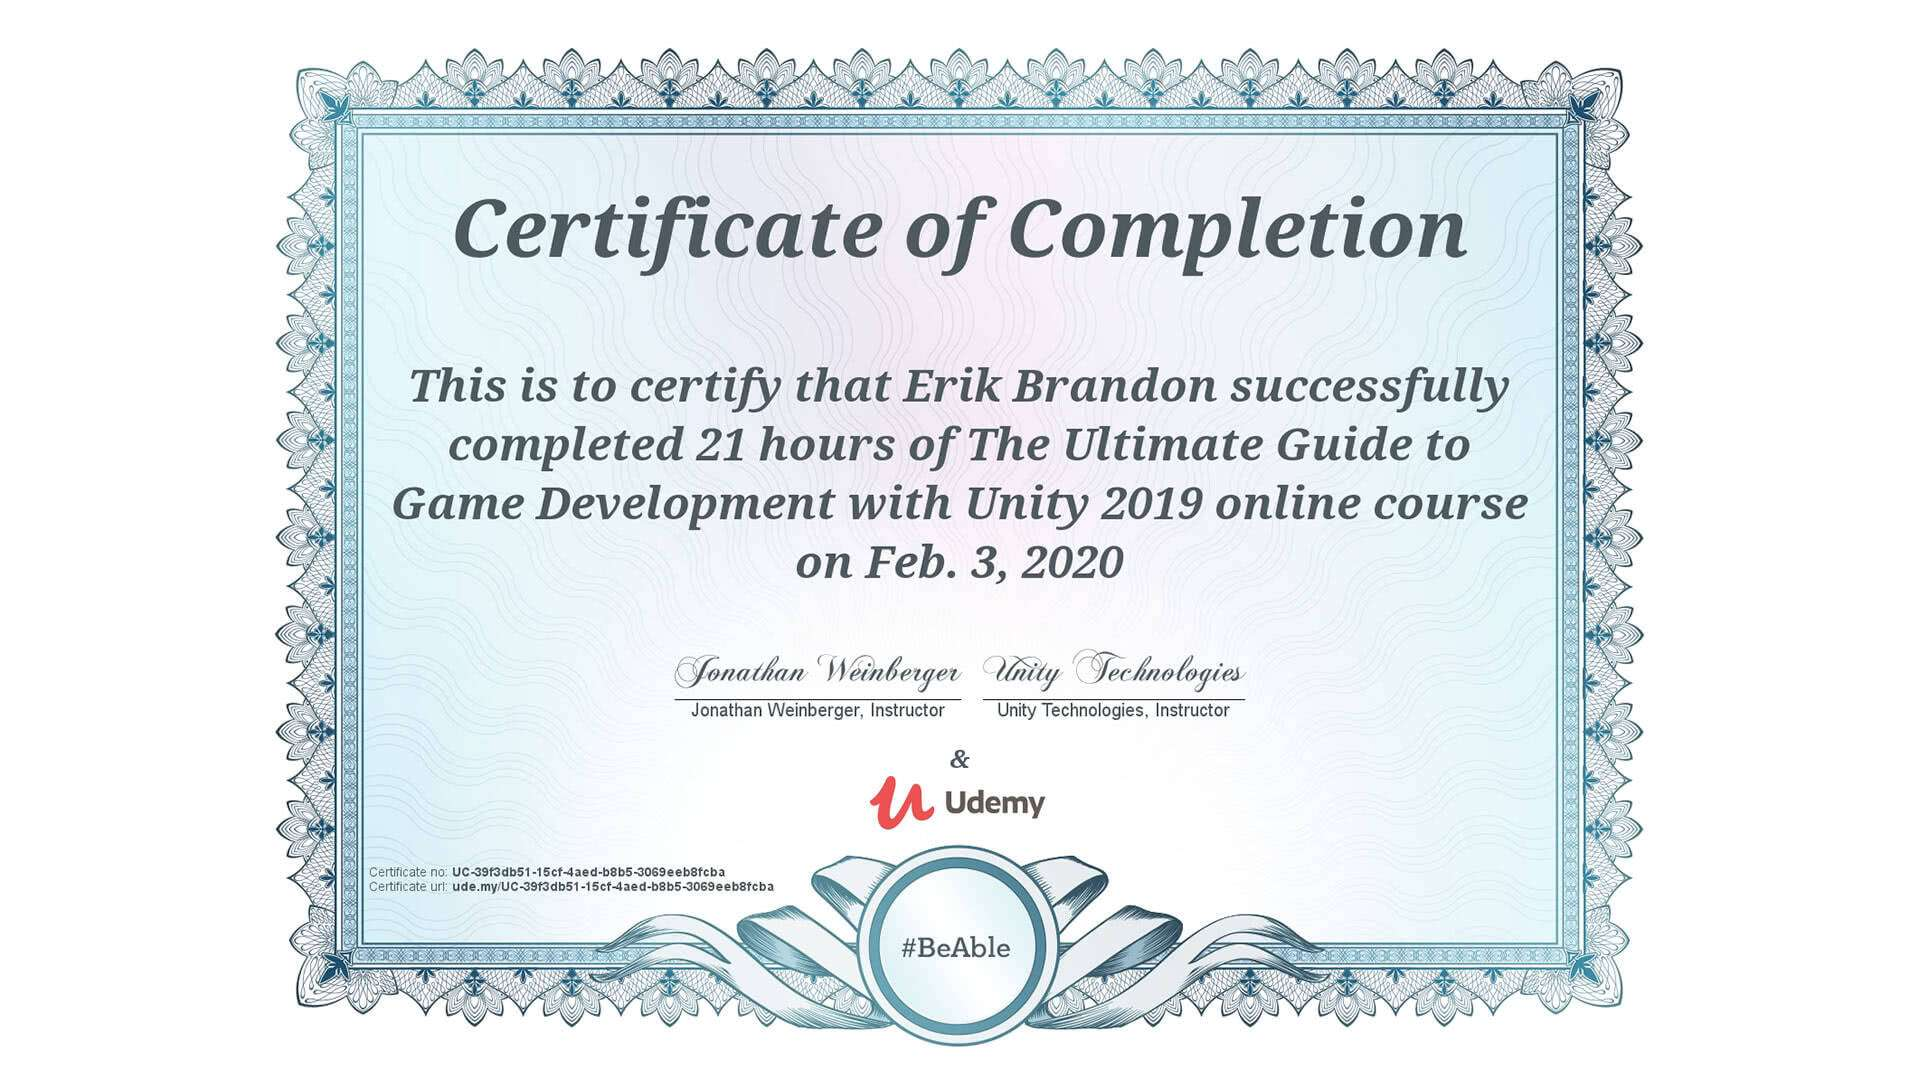 the-ultimate-guide-to-game-development-with-unity-udemy-certificate